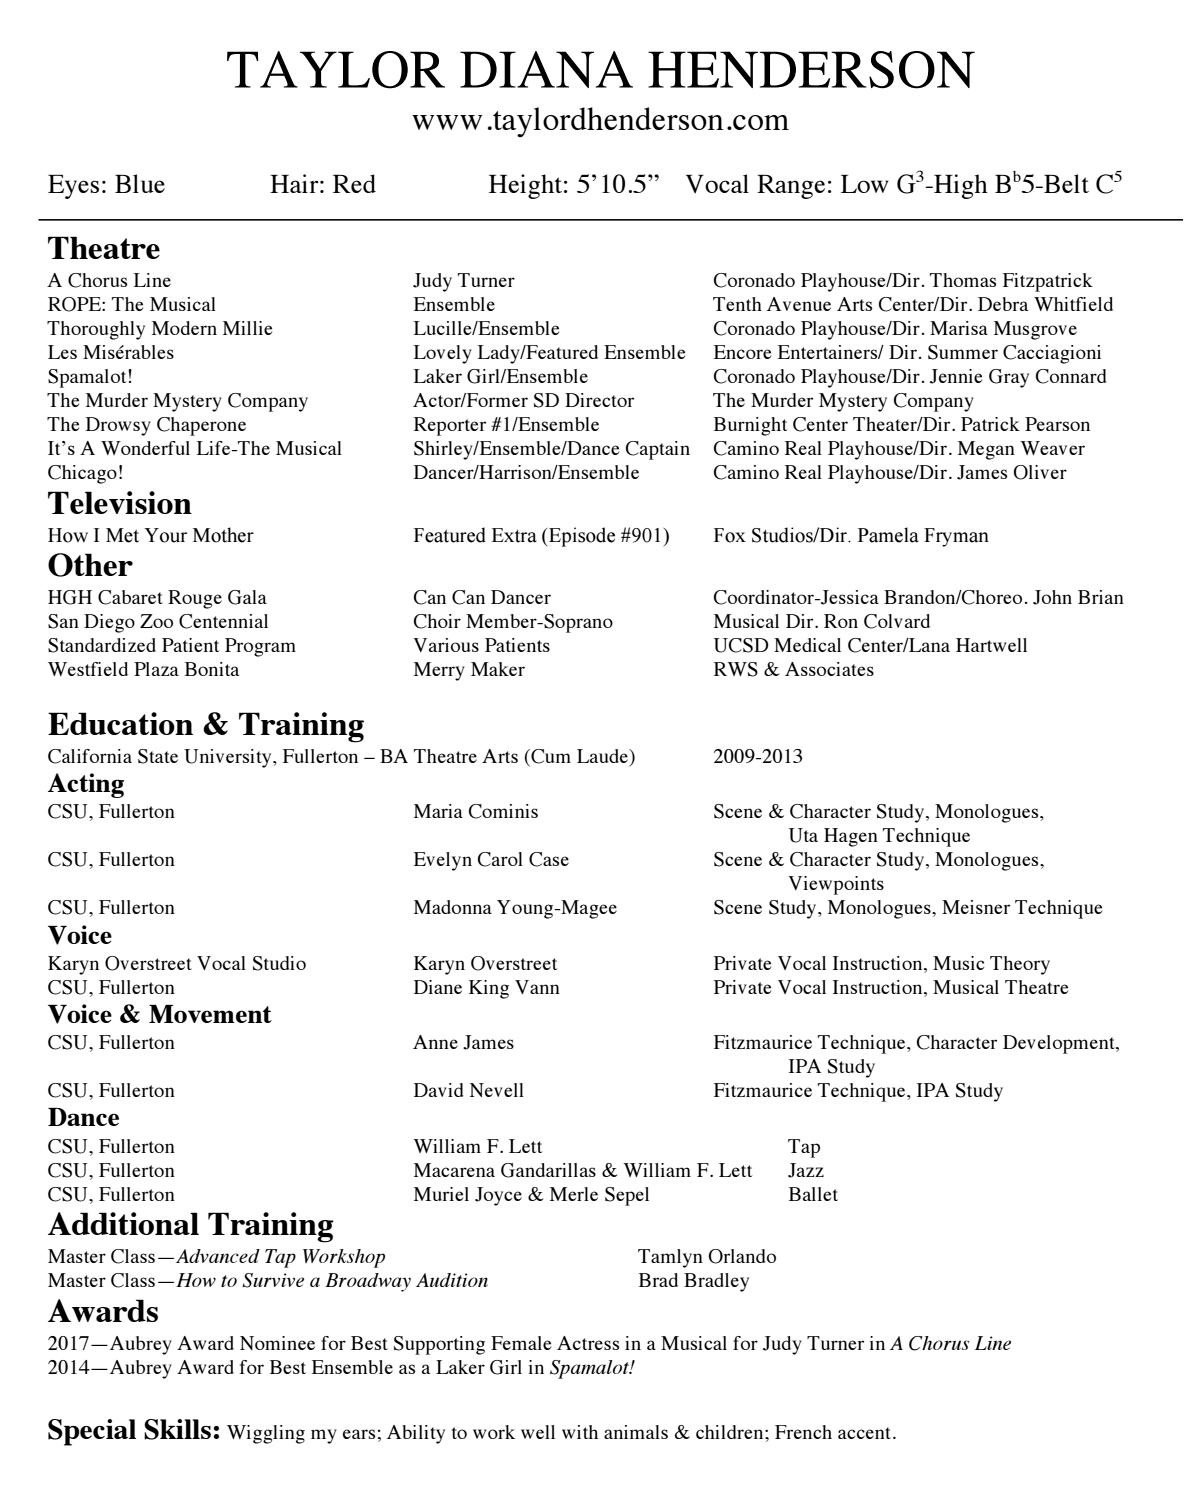 Taylor Diana Henderson Performance Resume by Taylor